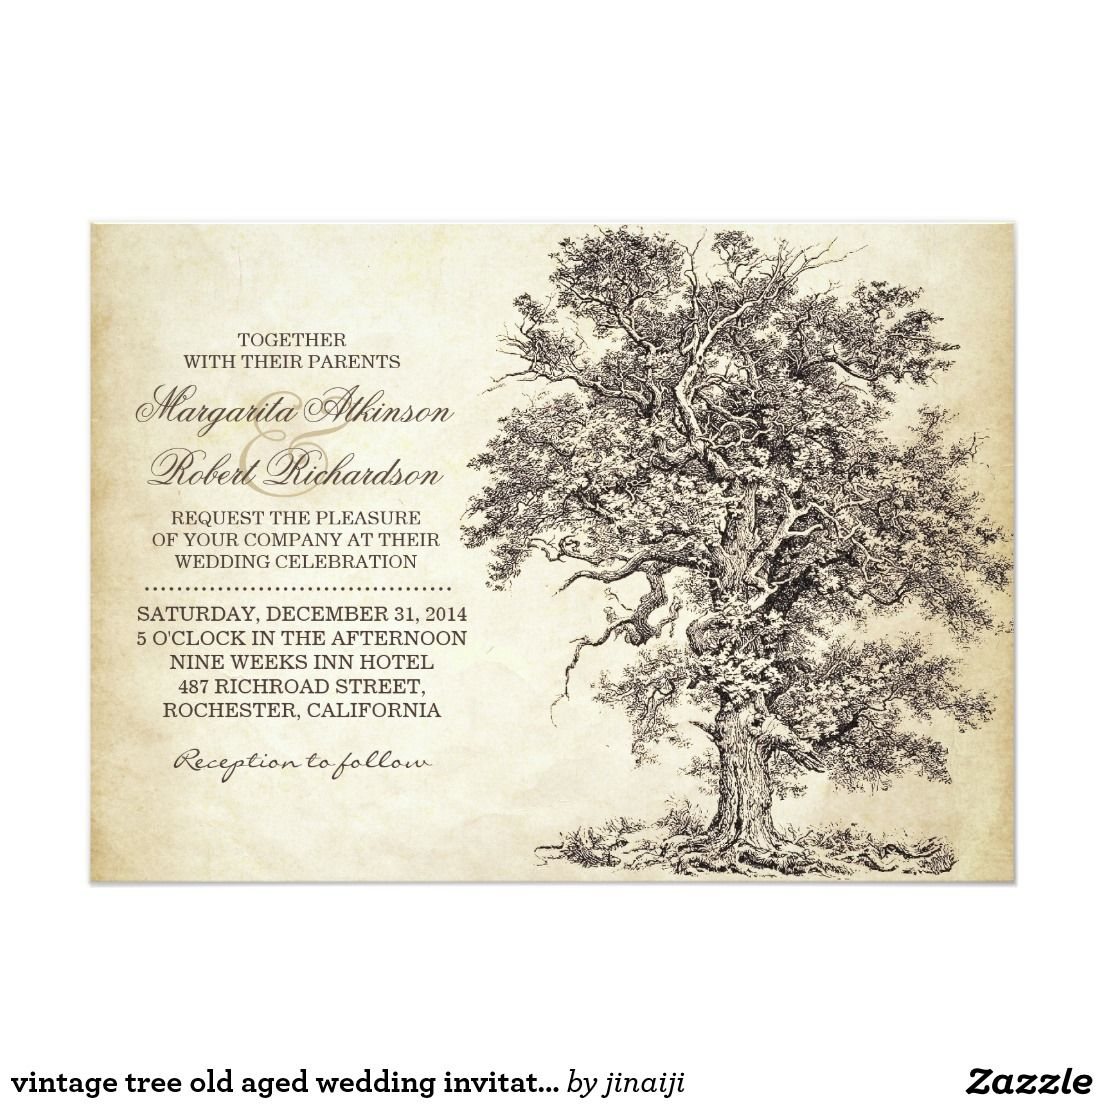 Vintage tree old aged wedding invitations wedding and wedding vintage tree old aged wedding invitations stopboris Gallery